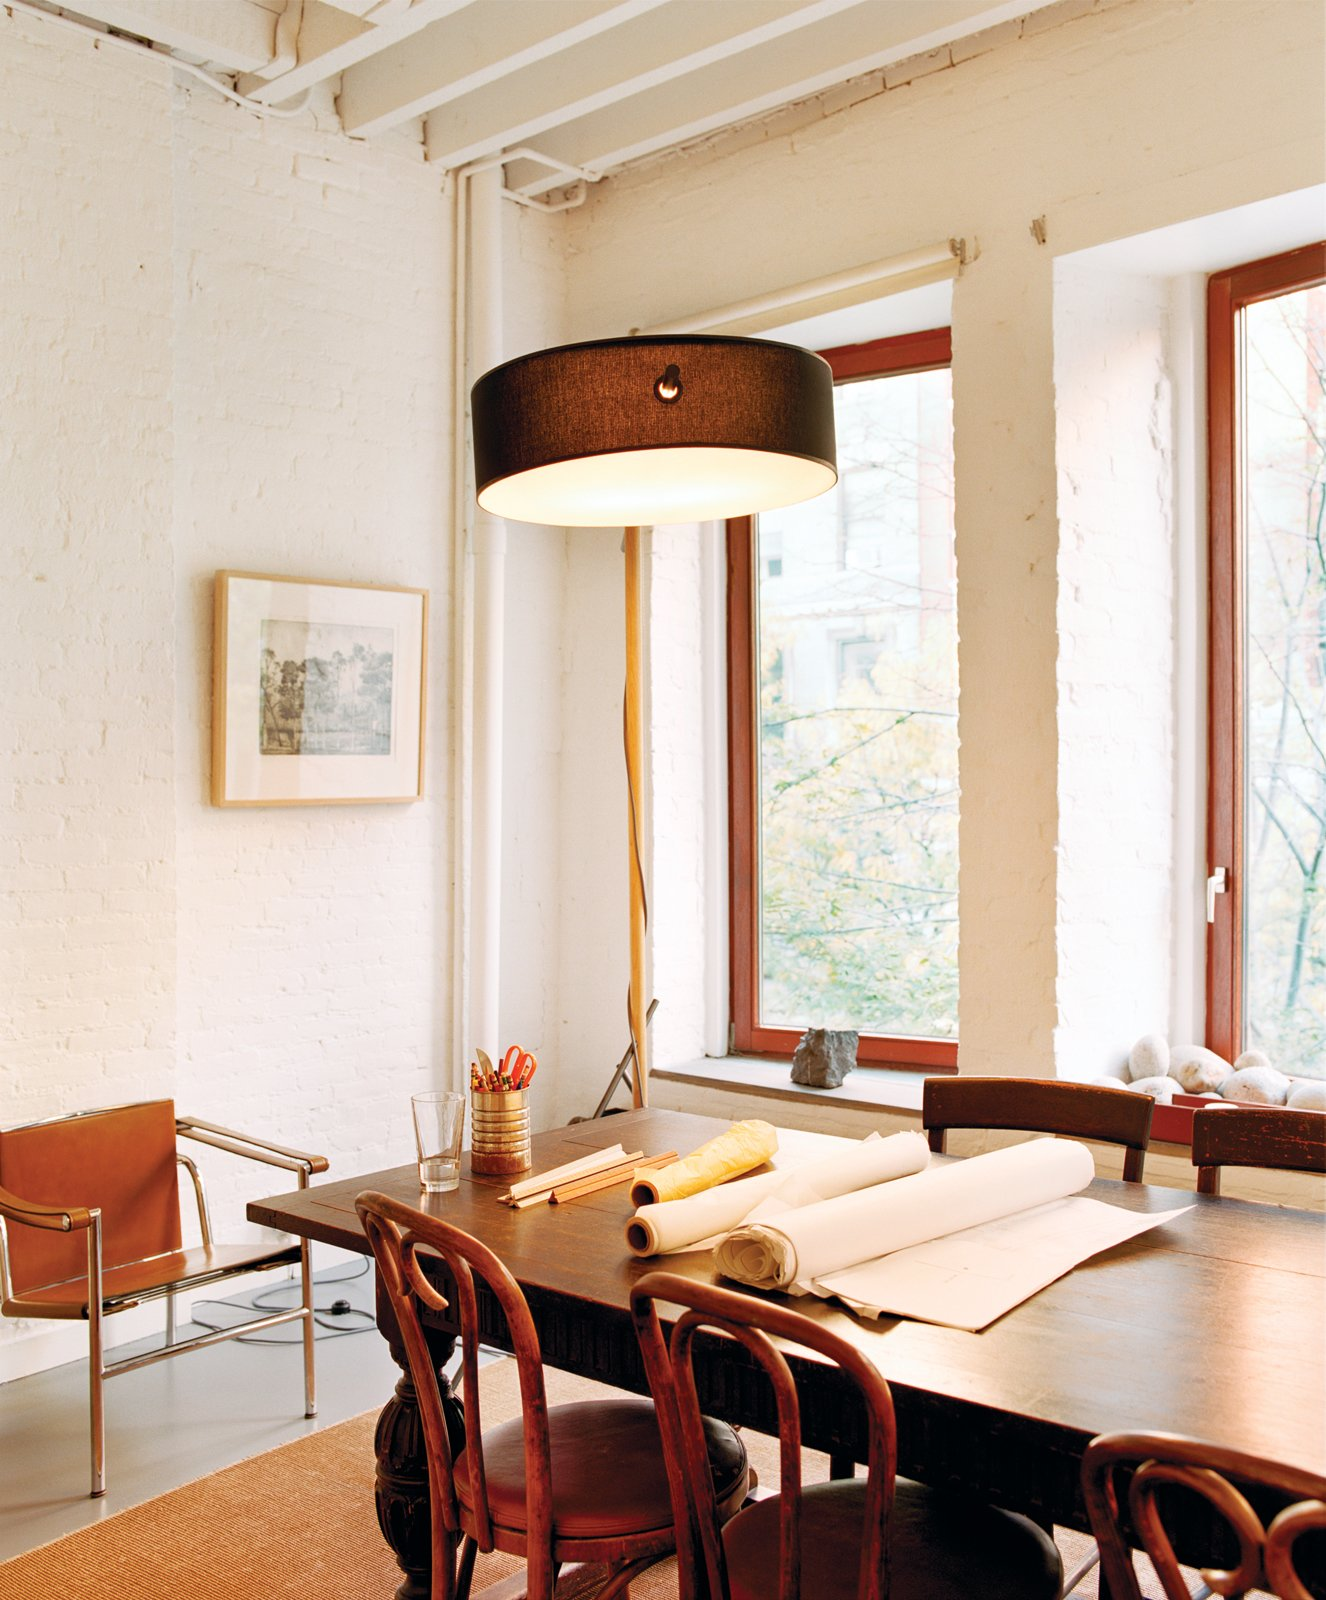 Dining Room, Chair, Pendant Lighting, and Table Ryall's only so-called extravagances in the inexpensive renovation were the weather- and sound-resistant windows and central air-conditioning system.  Photo 2 of 3 in Manhattan